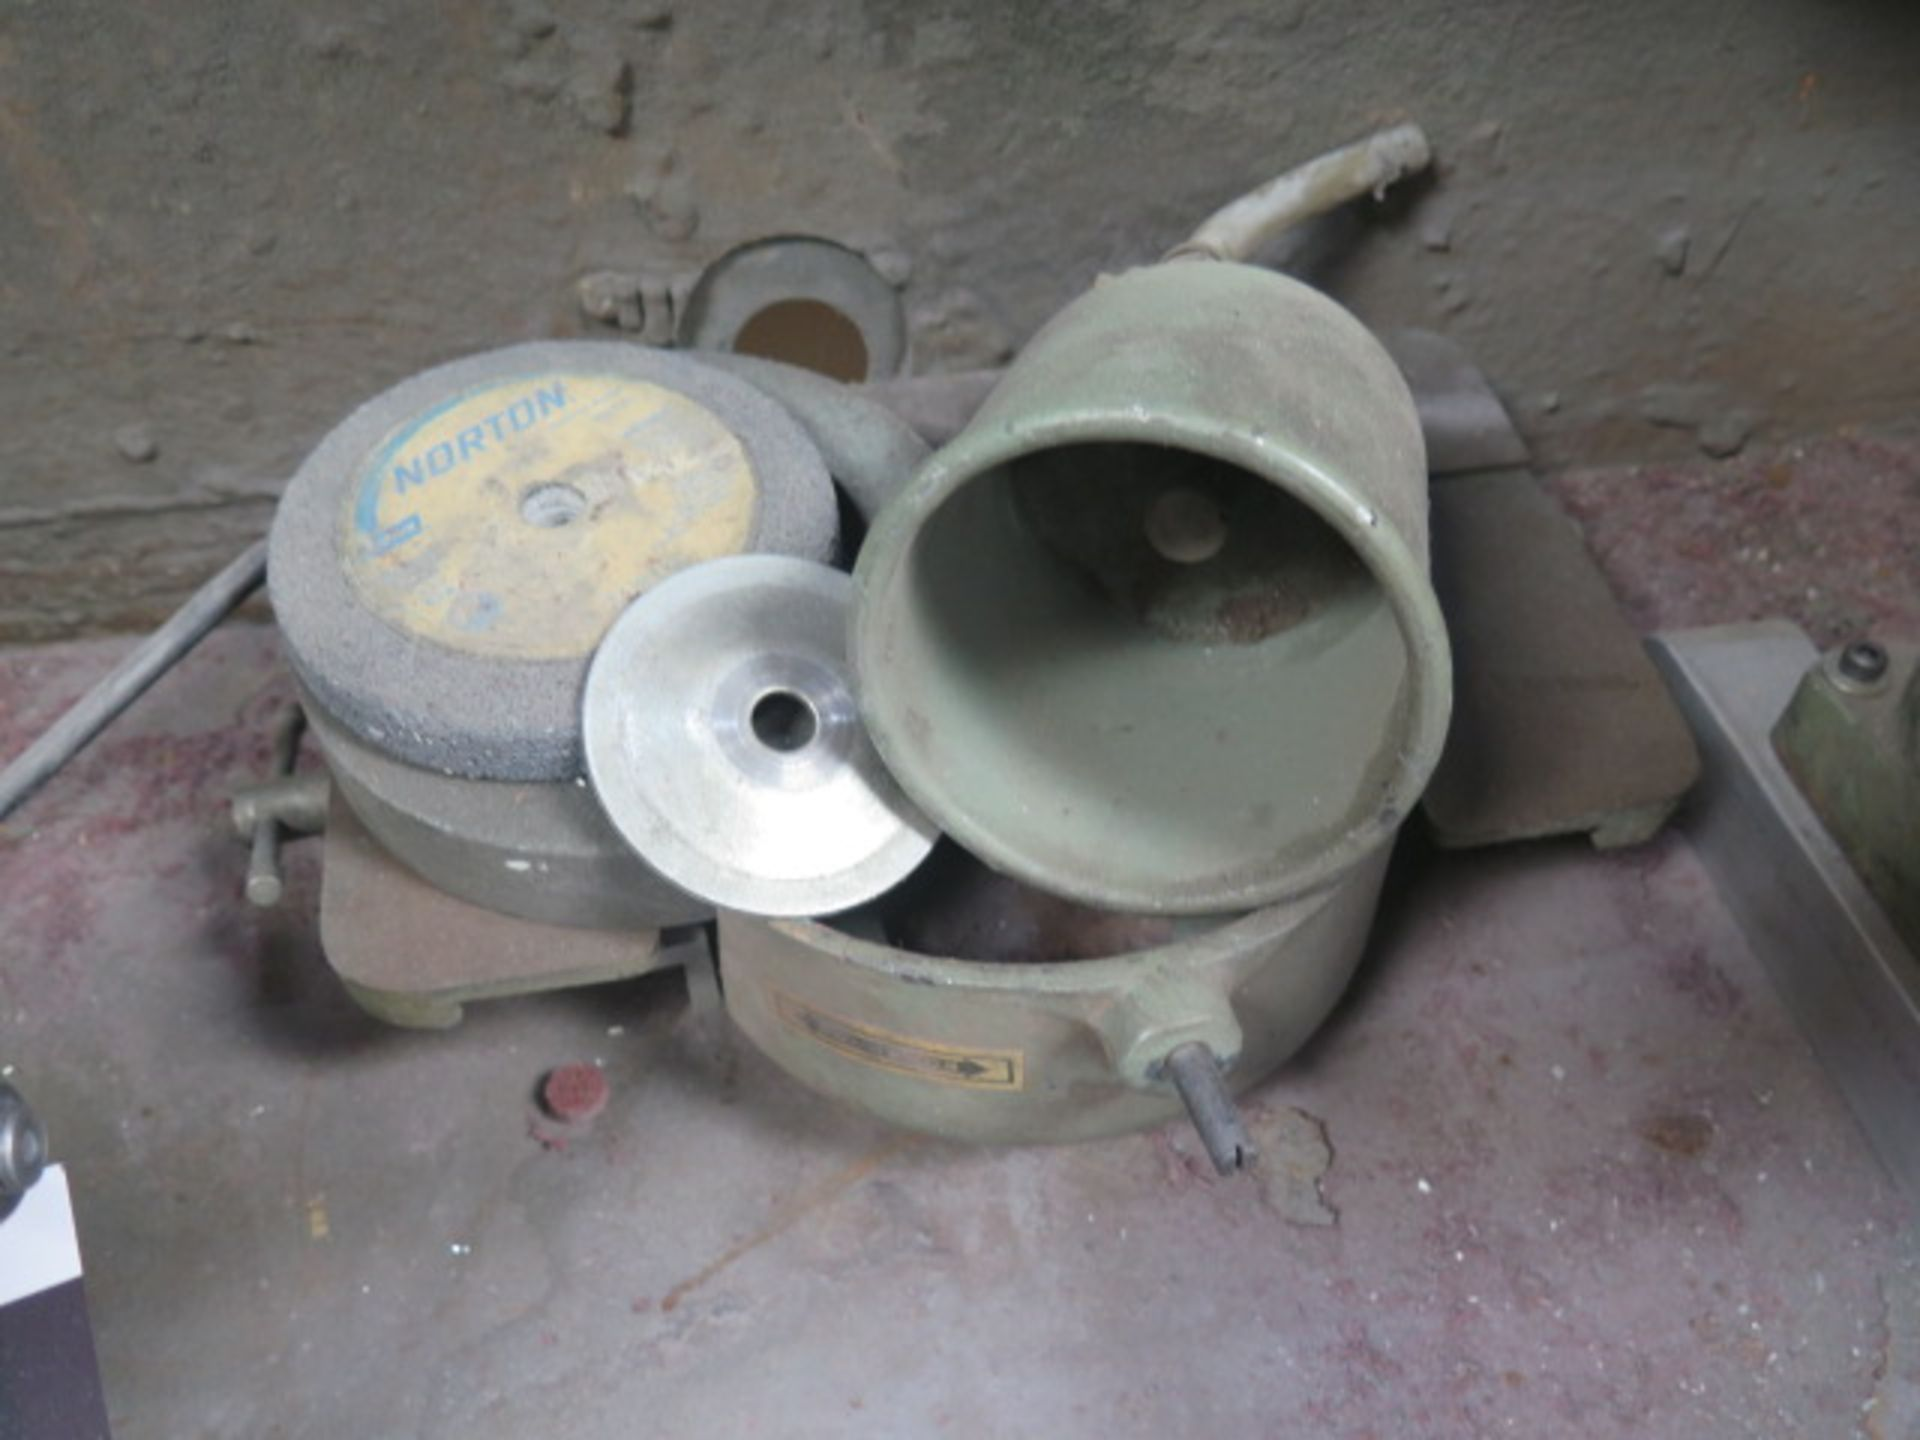 Import Carbide Tool Grinder (NEEDS REPAIR) (SOLD AS-IS - NO WARRANTY) - Image 4 of 6